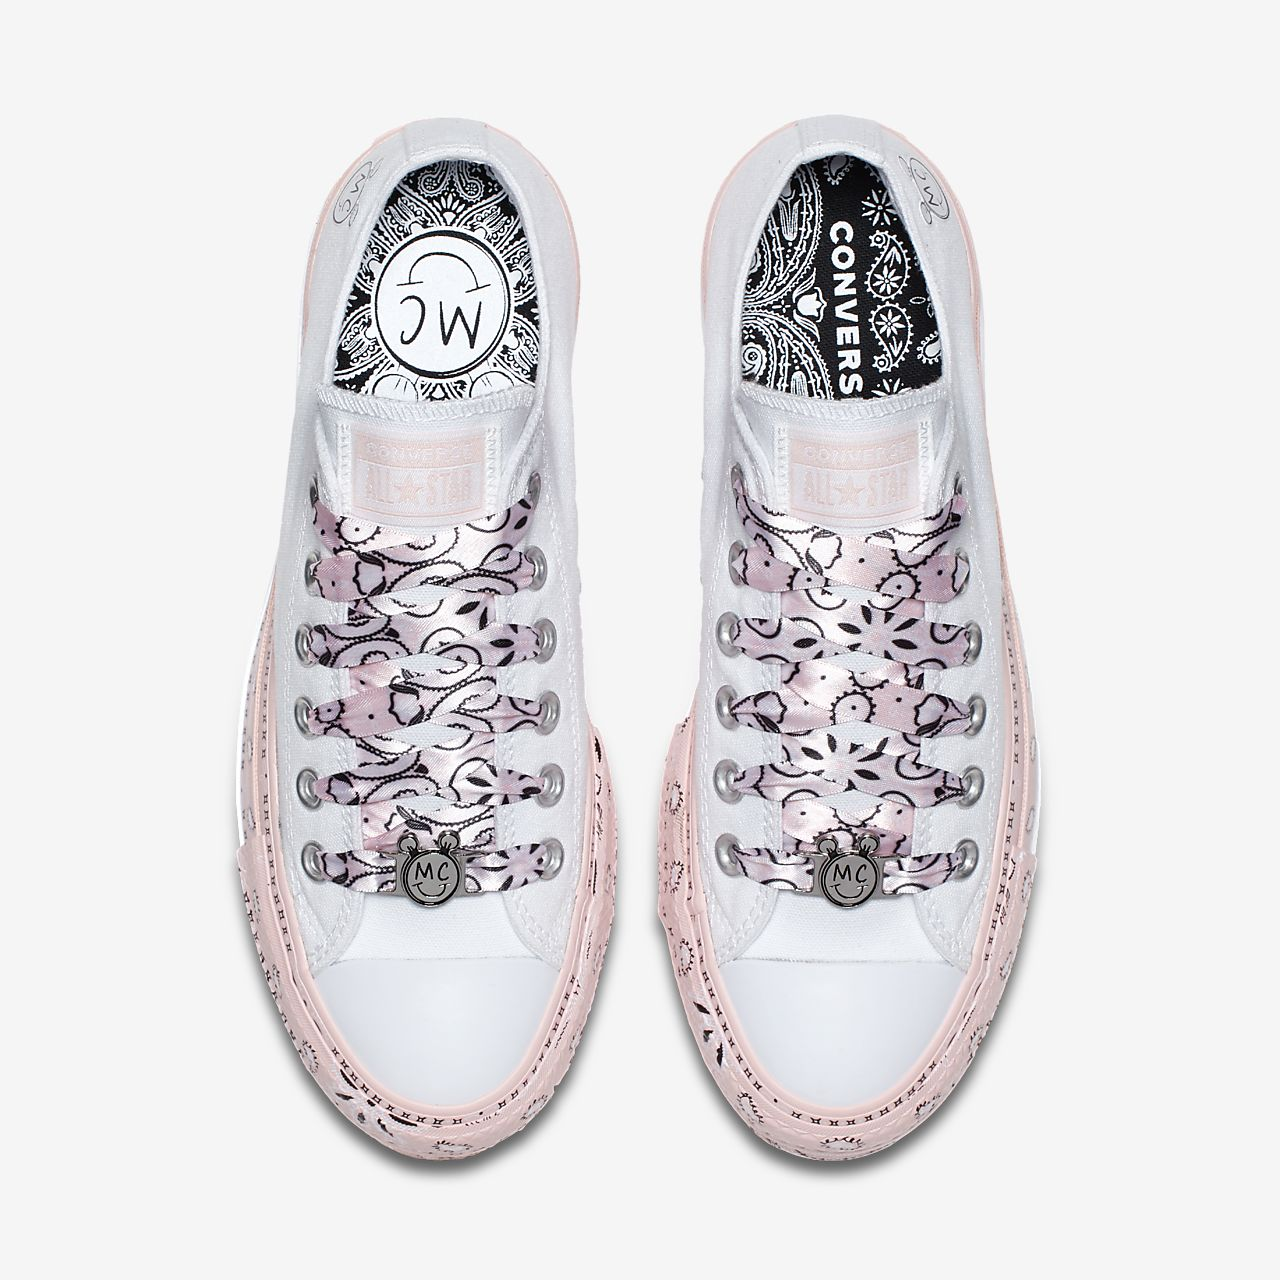 Converse Women's X Miley Cyrus Chuck Taylor All Star Glitter Low Top Sneaker 4fVVfzyk